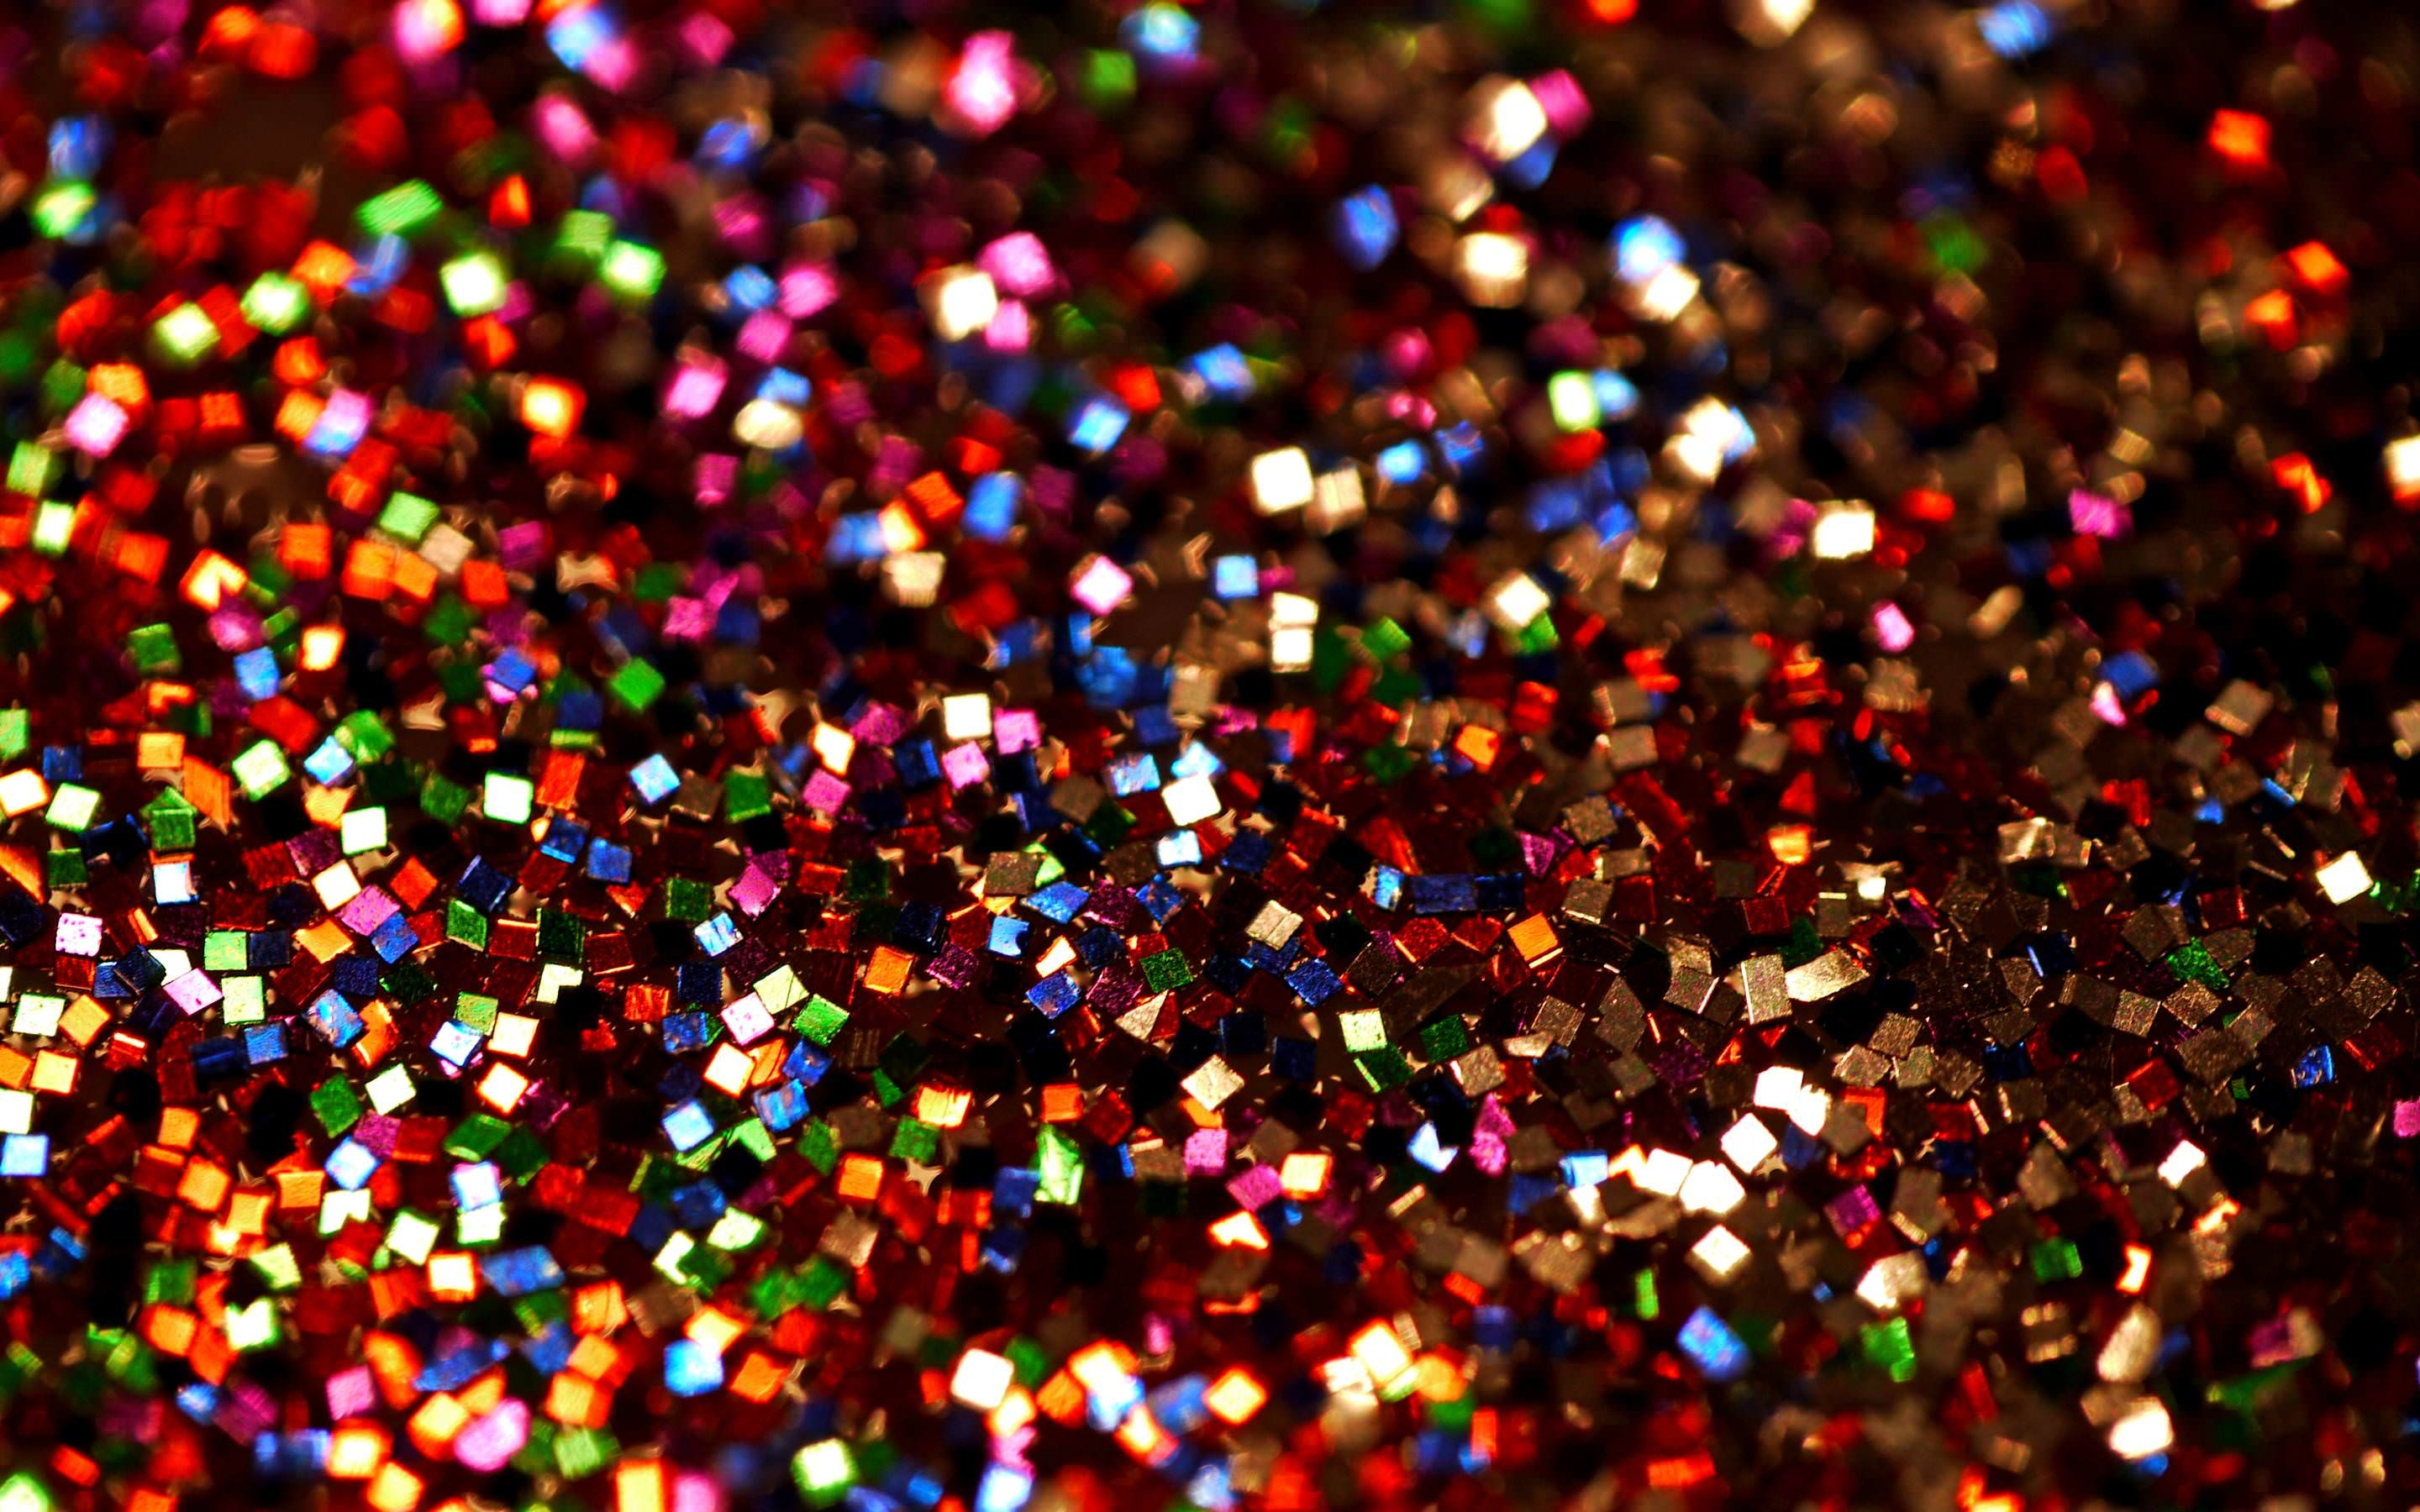 Multicolored-Glitter-Background-Wallpaper